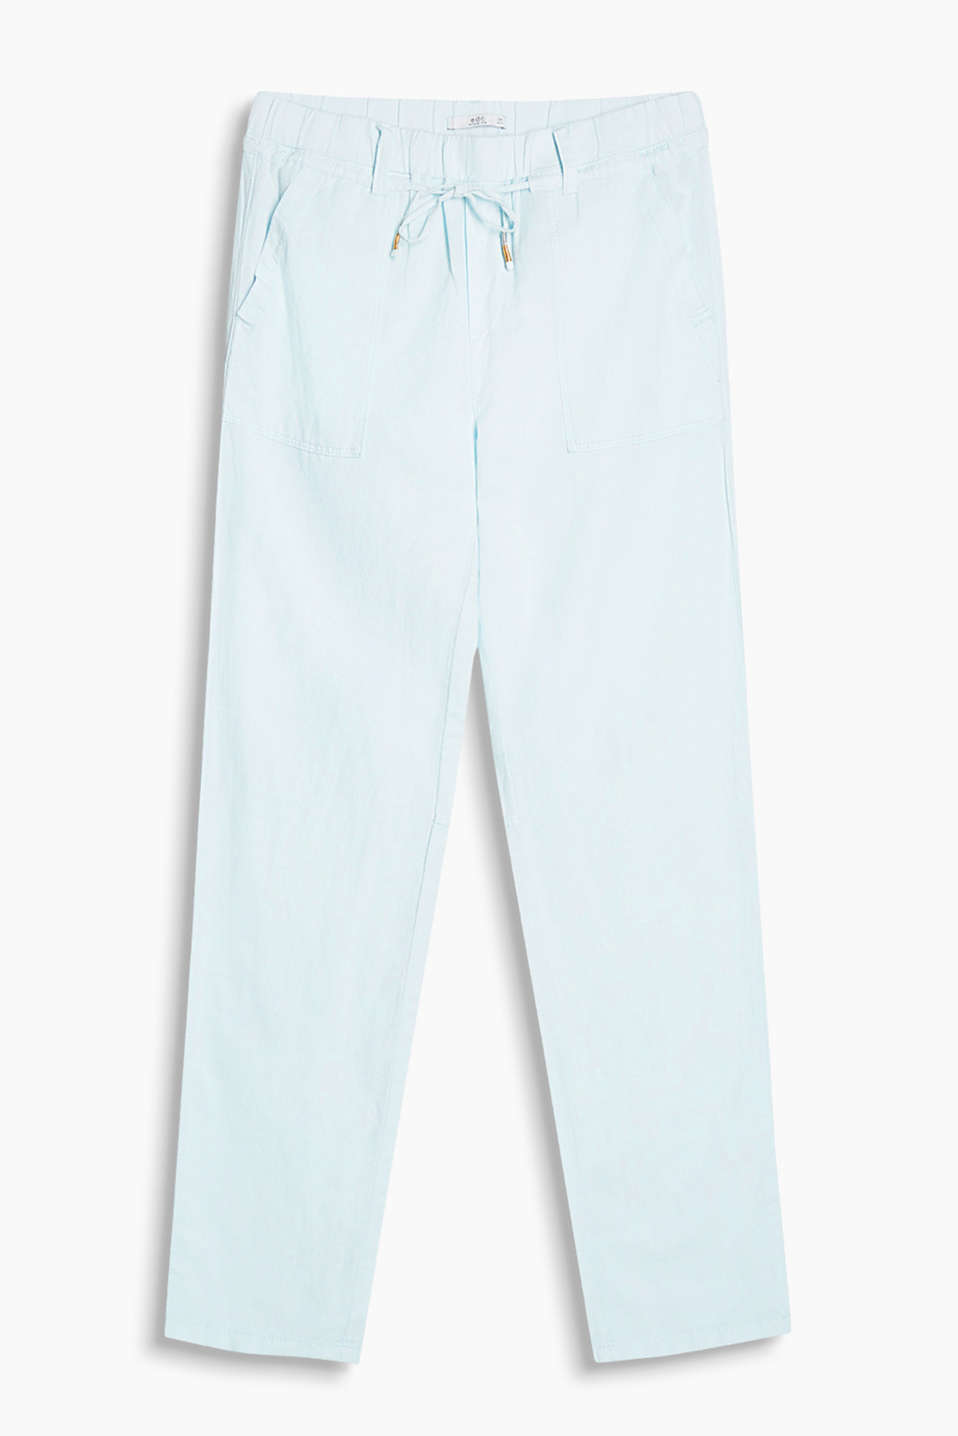 Linen blend tracksuit bottoms with a wide elasticated waistband and patch pockets at the hips